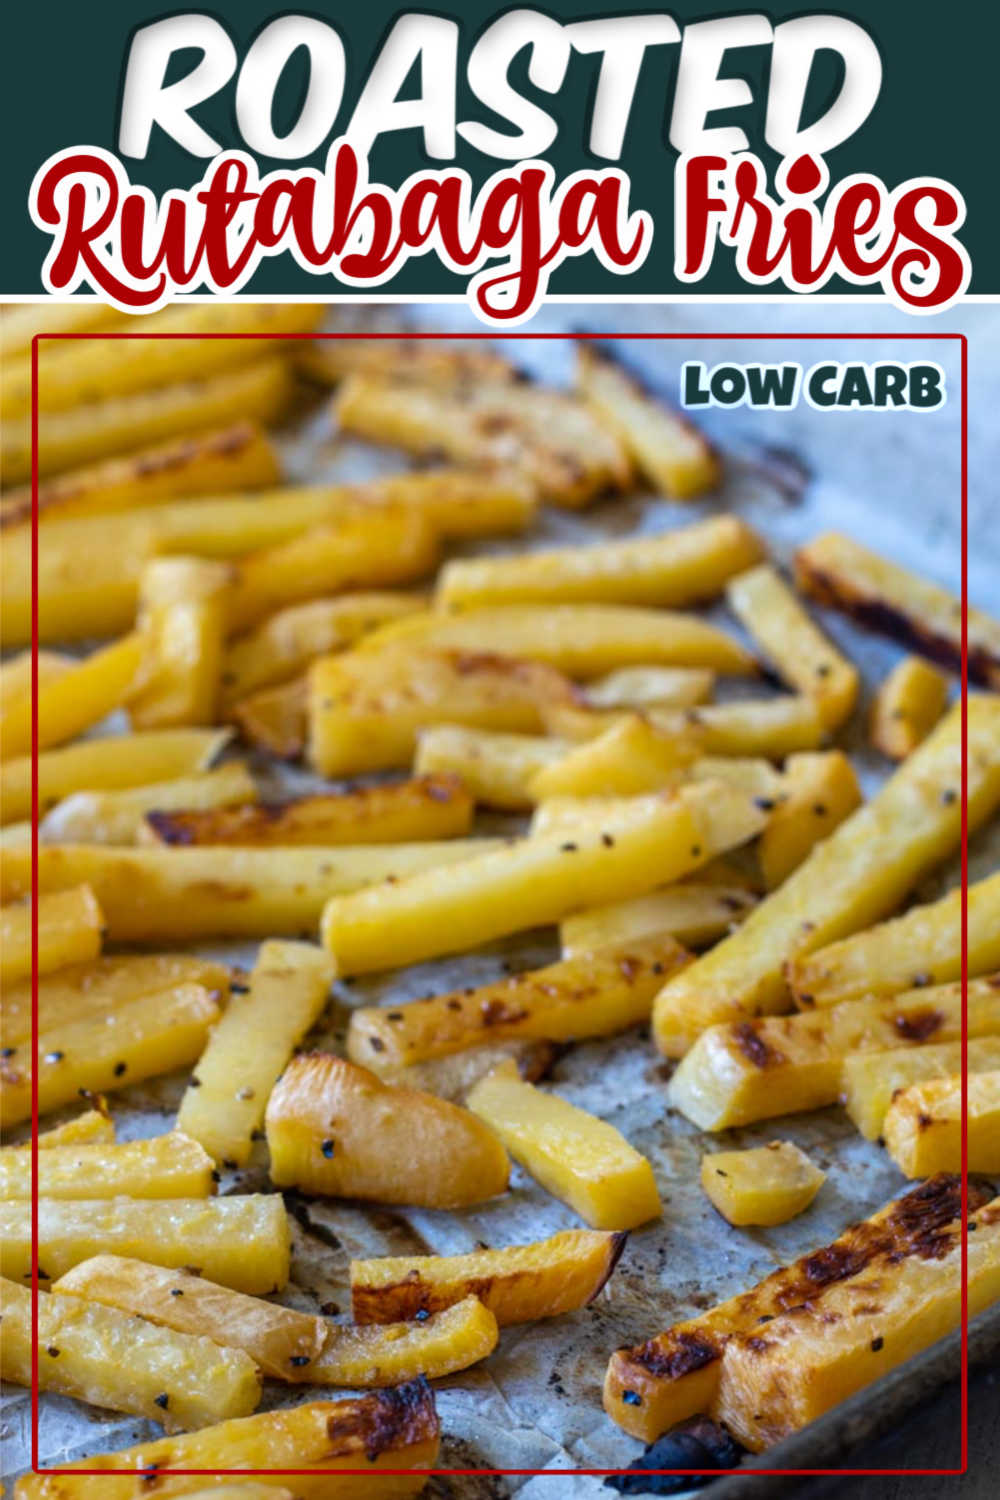 Healthy Sheet Pan Roasted Rutabaga Fries are much more flavorful than potatoes and perfect for low-carb and keto diets. If you haven\'t tried these, give them a go - you\'ll be amazed at the flavor!